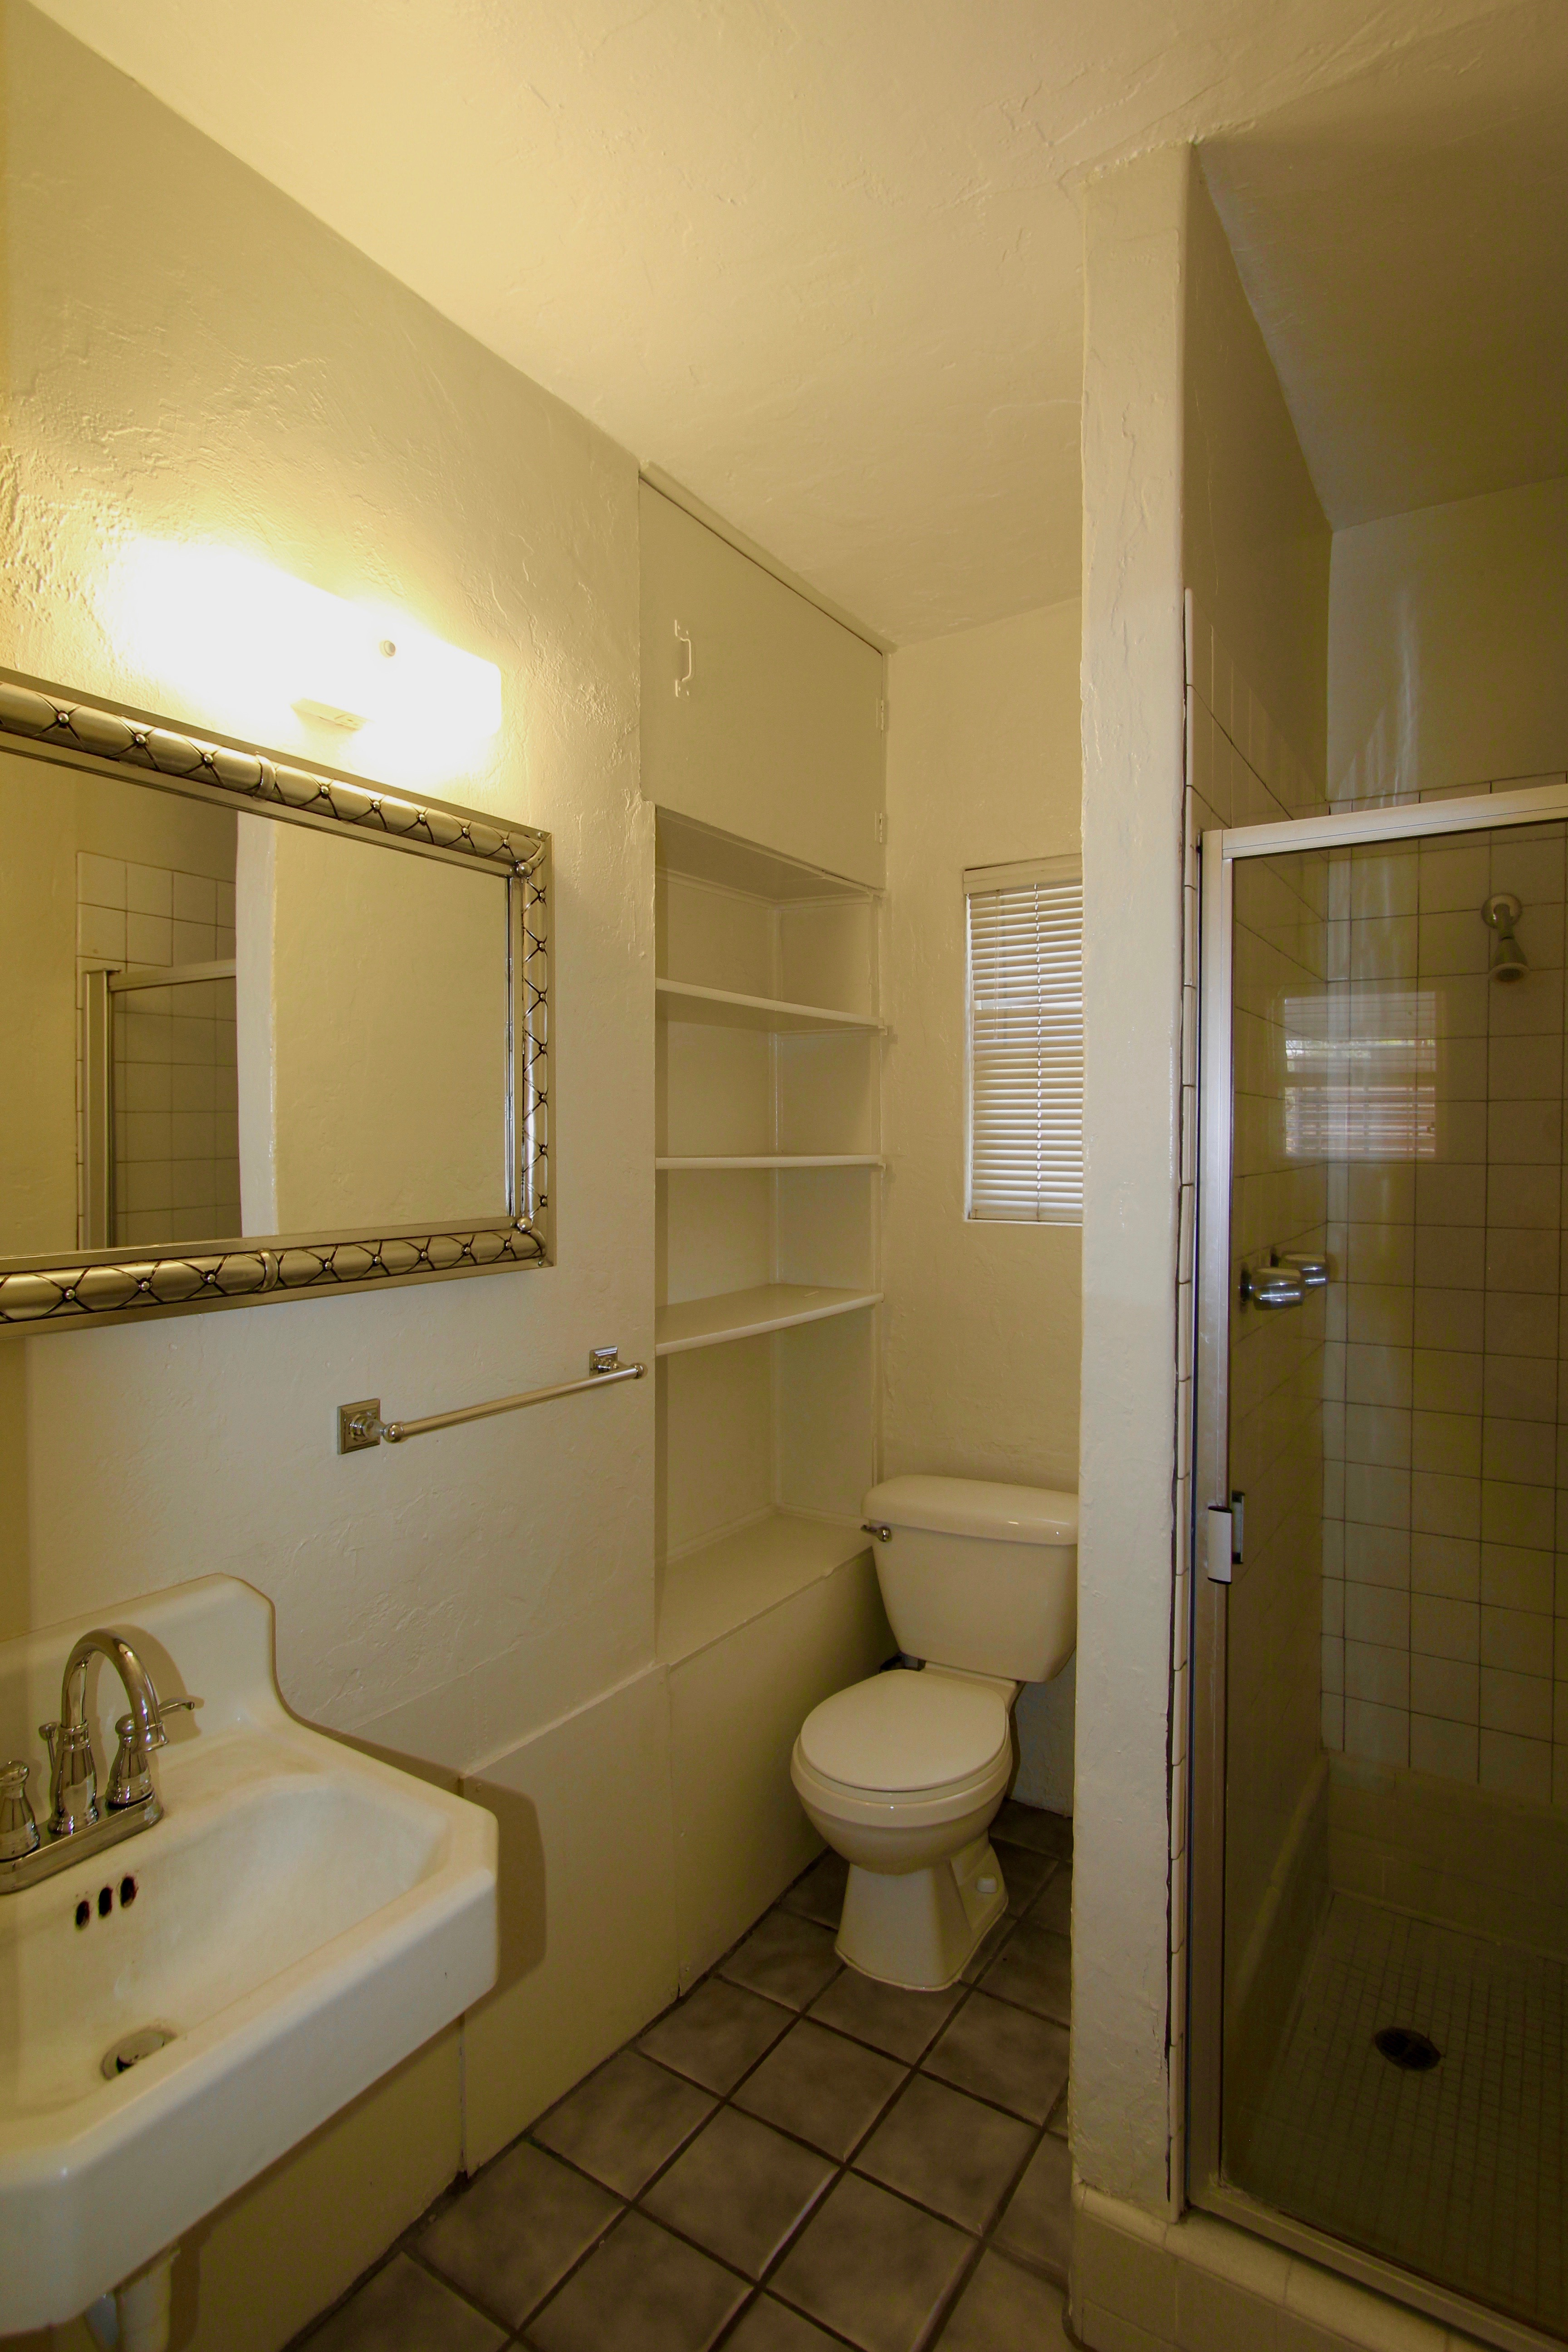 Studio Guest House – Near University of Arizona, Tucson